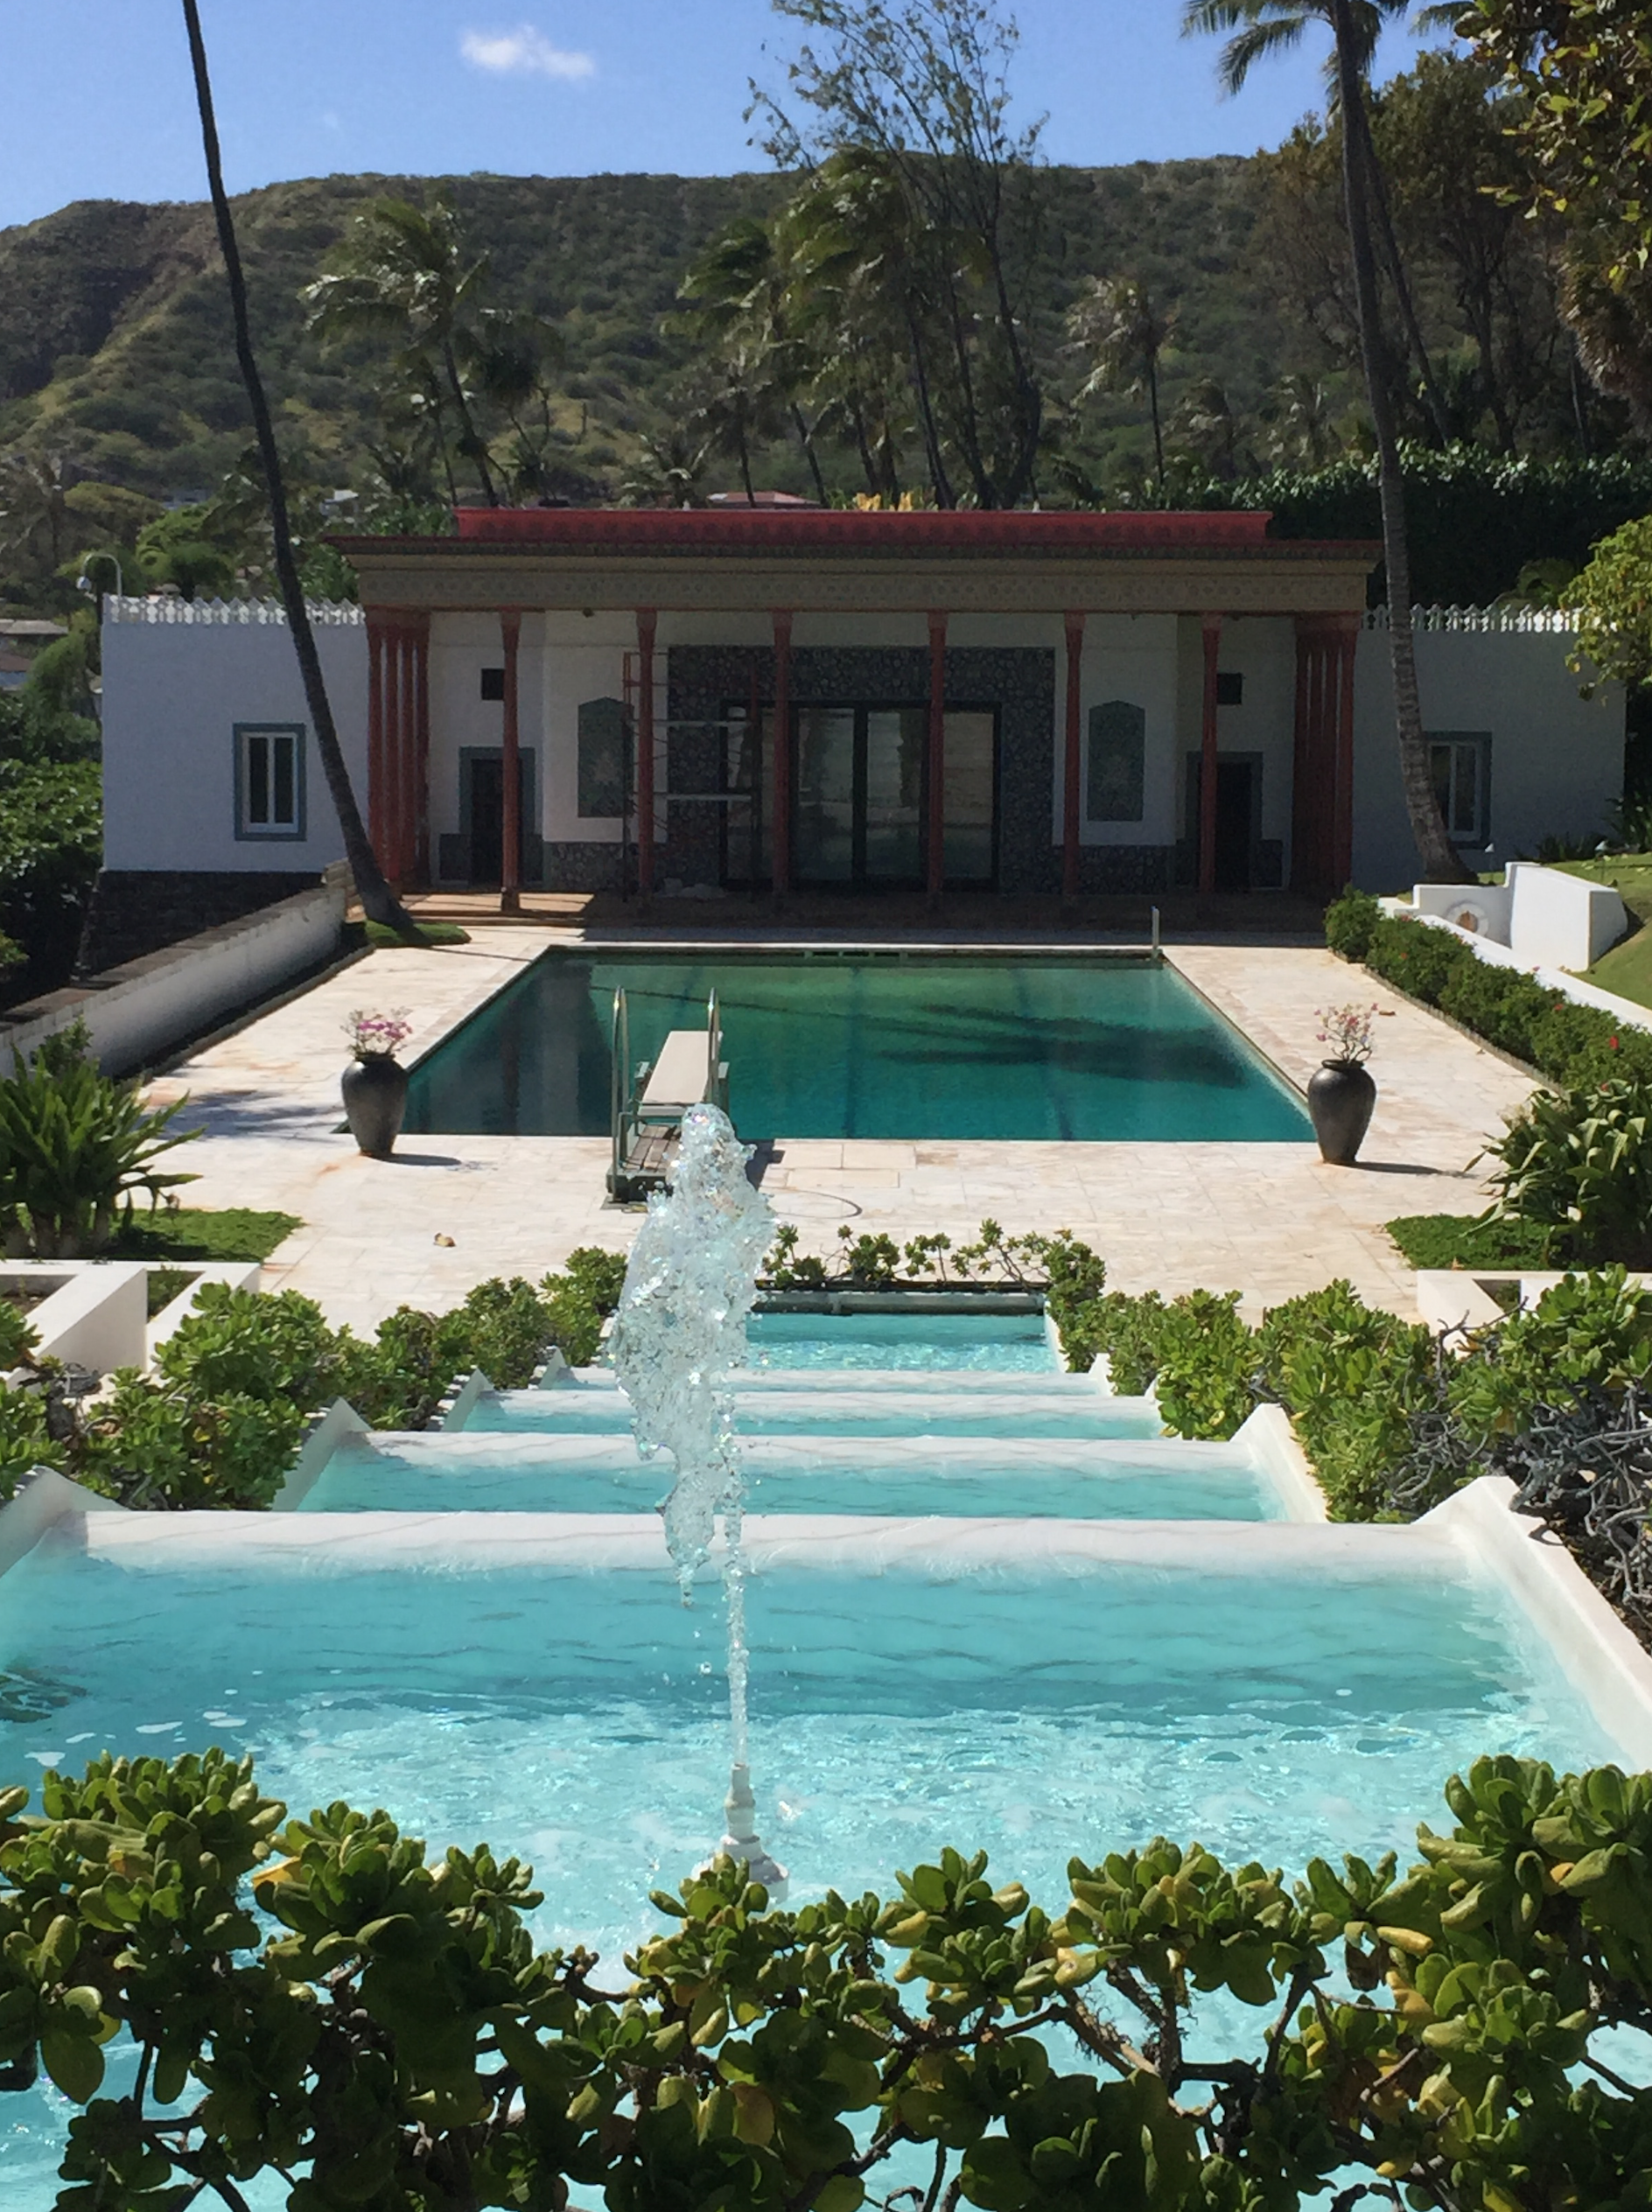 Doris Duke's Shangri La In Oahu, Hawaii - Shangri La Doris Duke - Honolulu Art Museum - Doris Duke Shangri La Tour - Oahu Hawaii - What to do on Oahu - #hawaii #oahu #honolulu